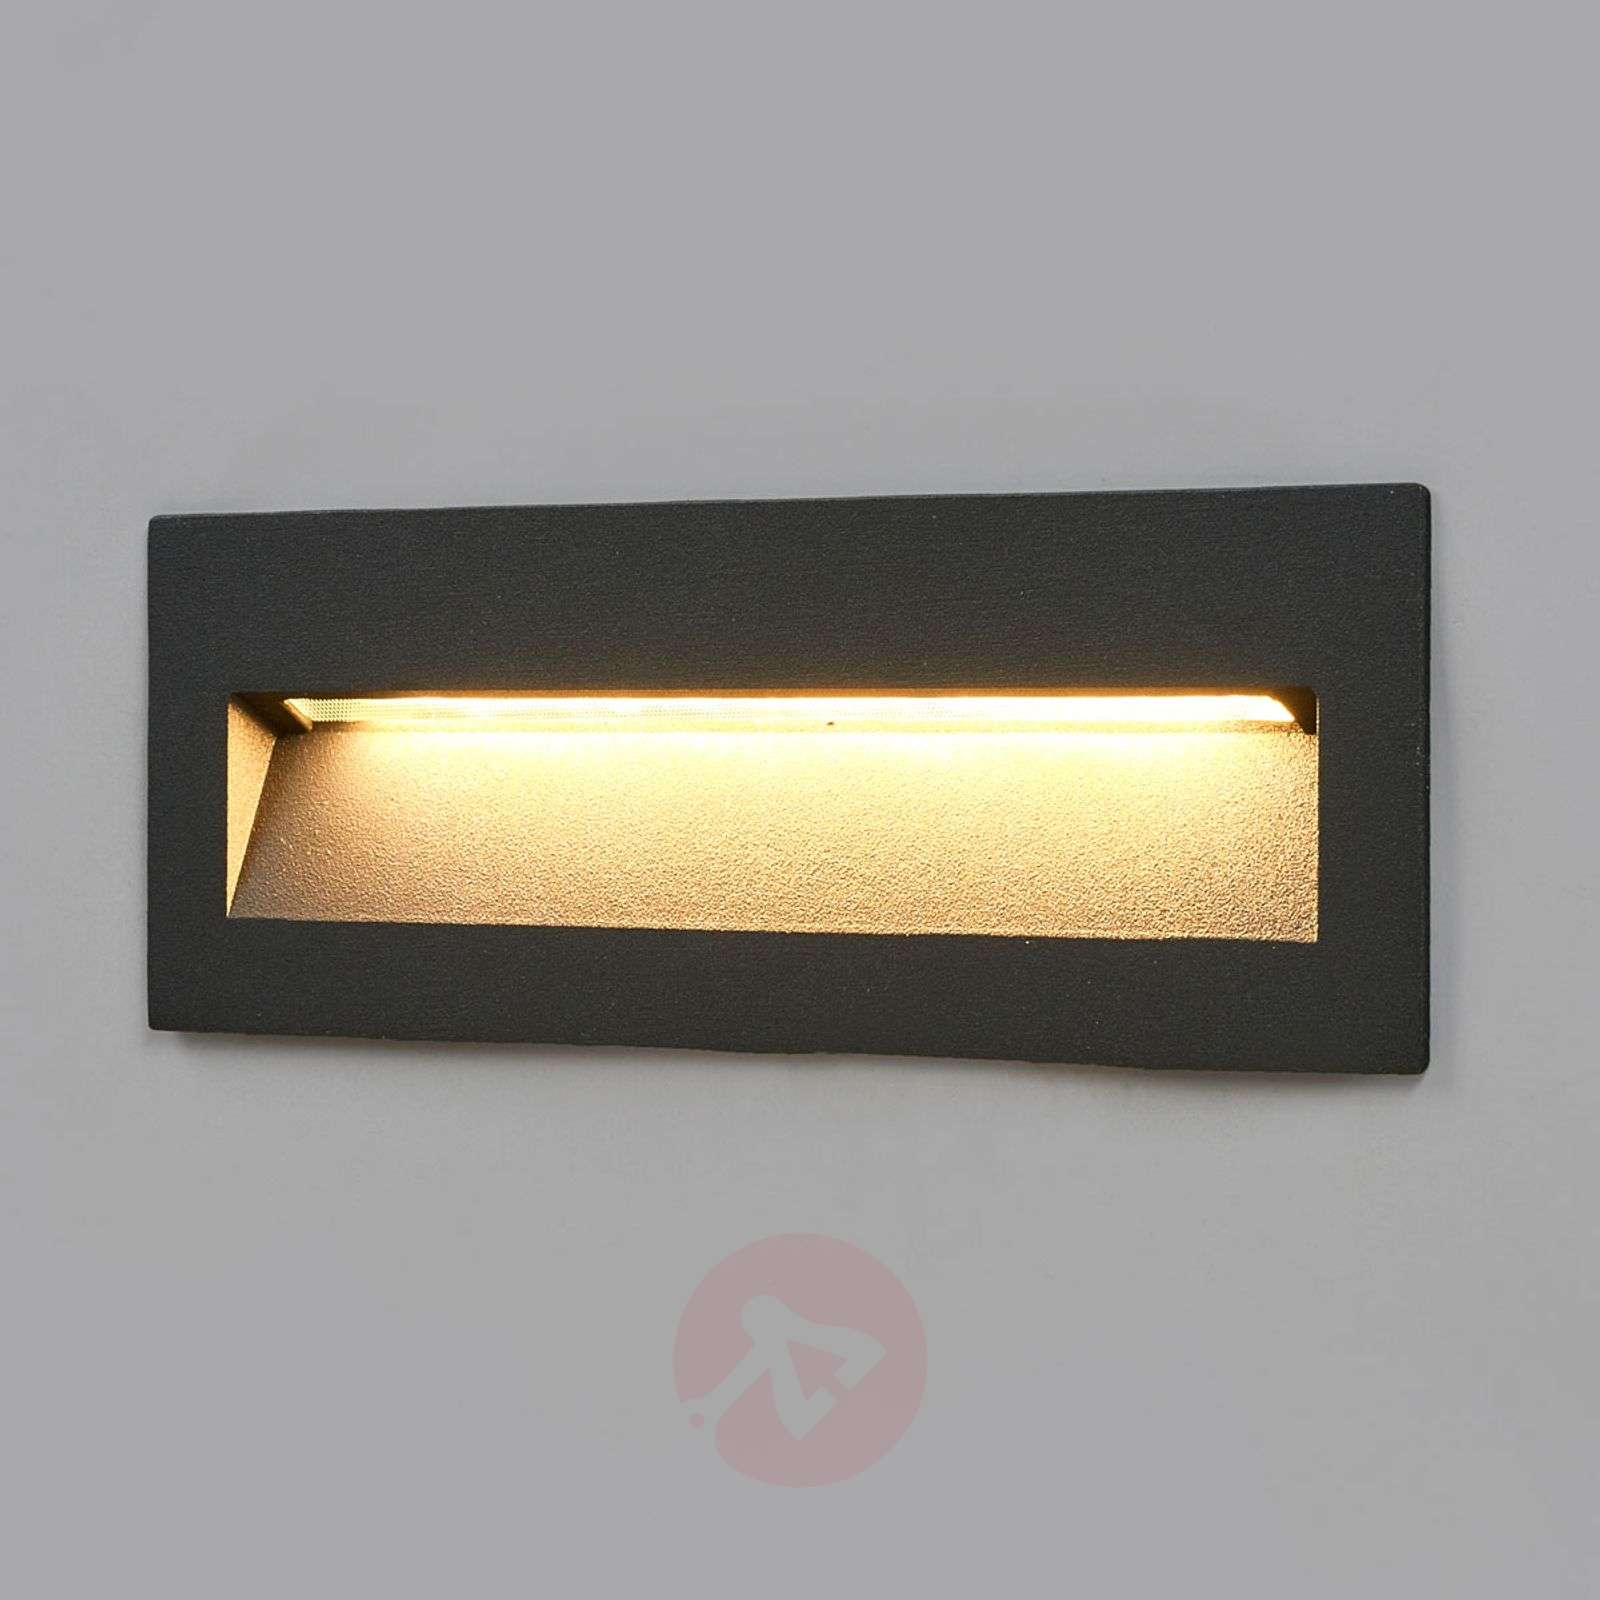 Acquista applique led loya grigio scuro incasso in esterni